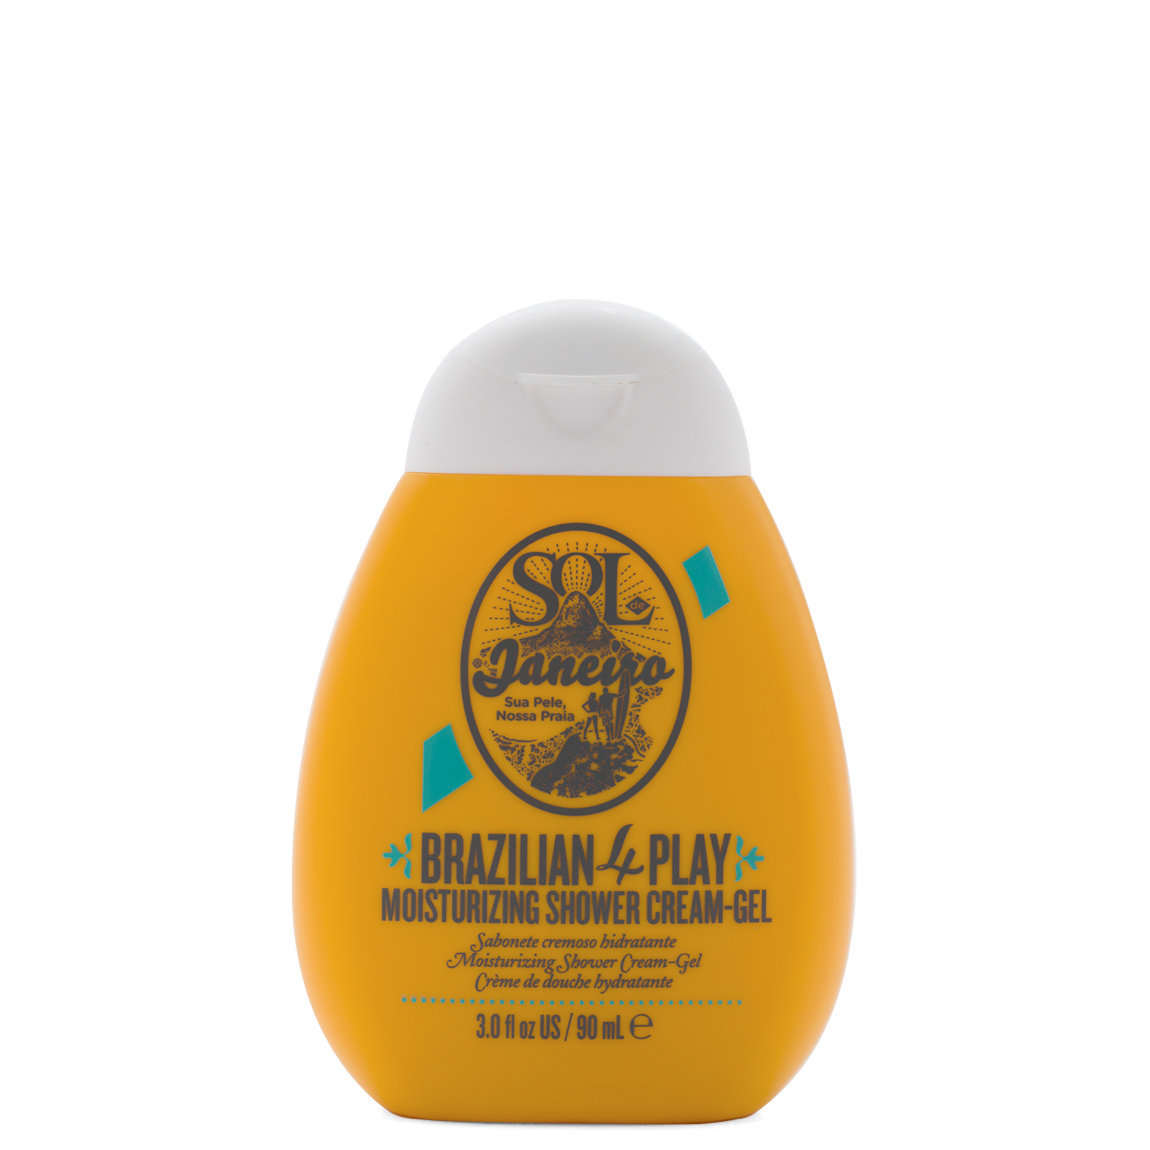 Sol de Janeiro Brazilian 4 Play Moisturizing Shower Cream-Gel 3.04 fl oz product smear.